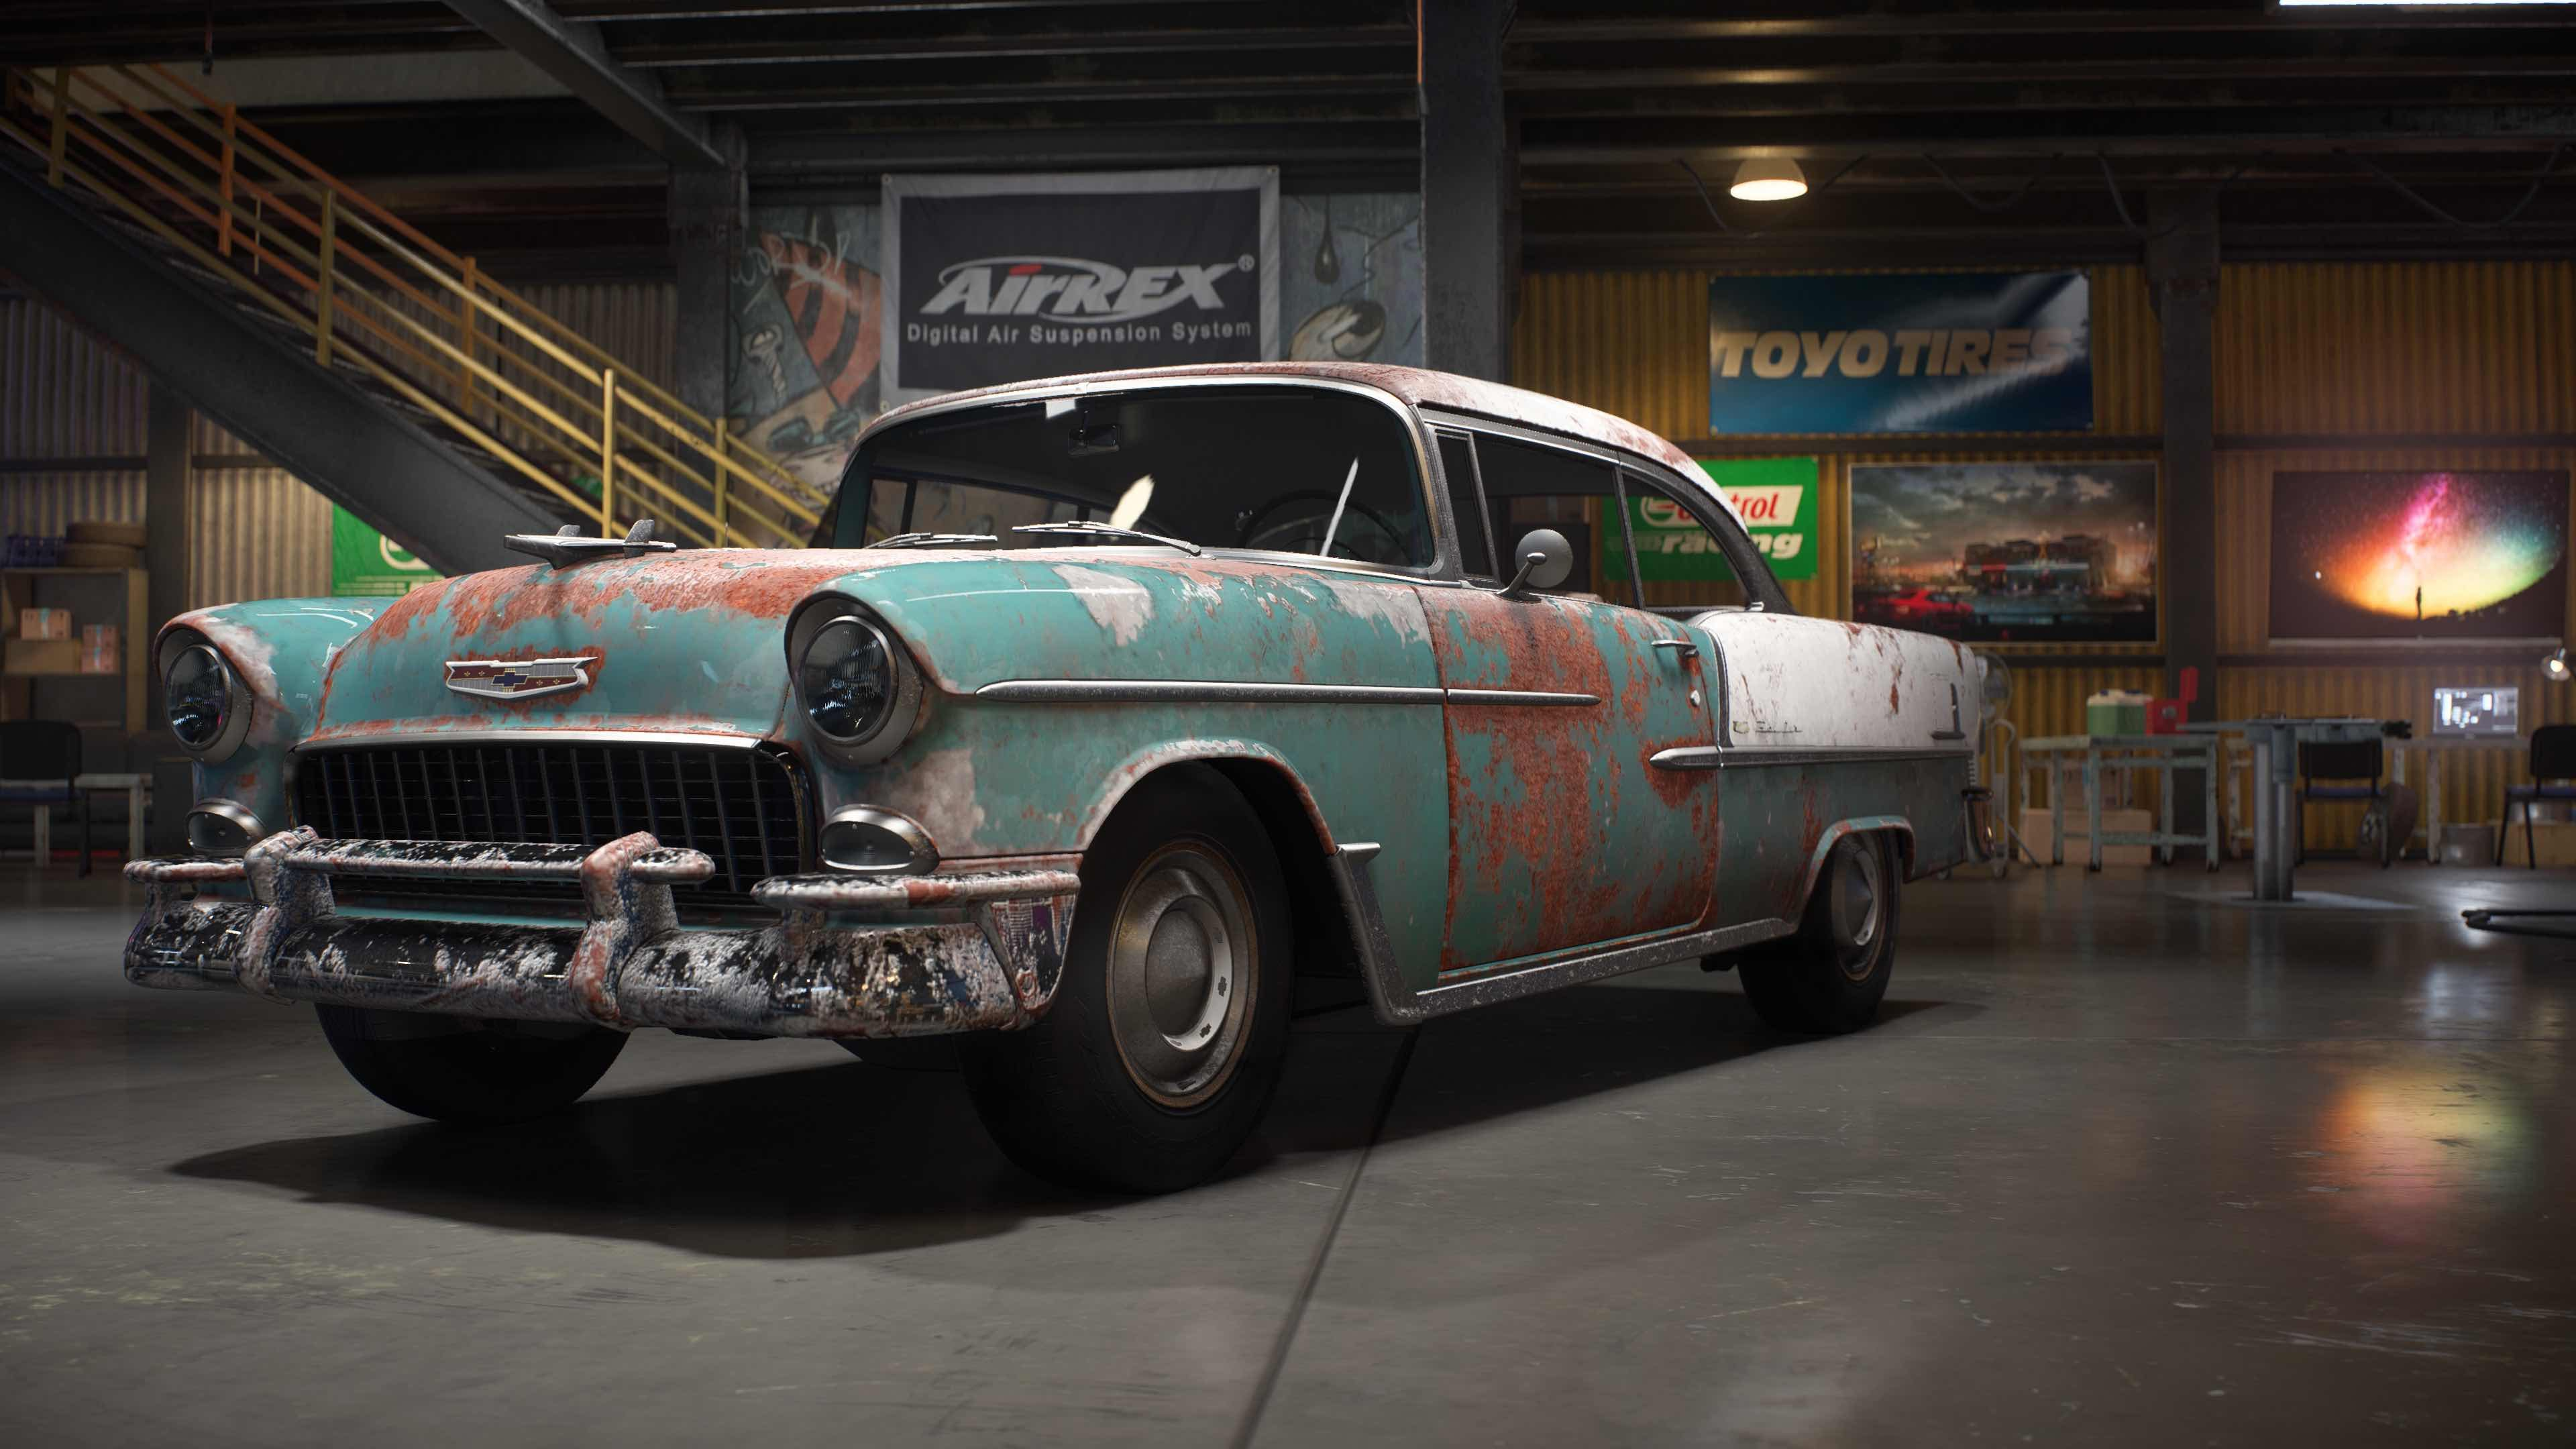 nfsp-botw-chevy-bel-air-01-2x.jpg.adapt.crop16x9.14505w.jpg - Need for Speed Payback